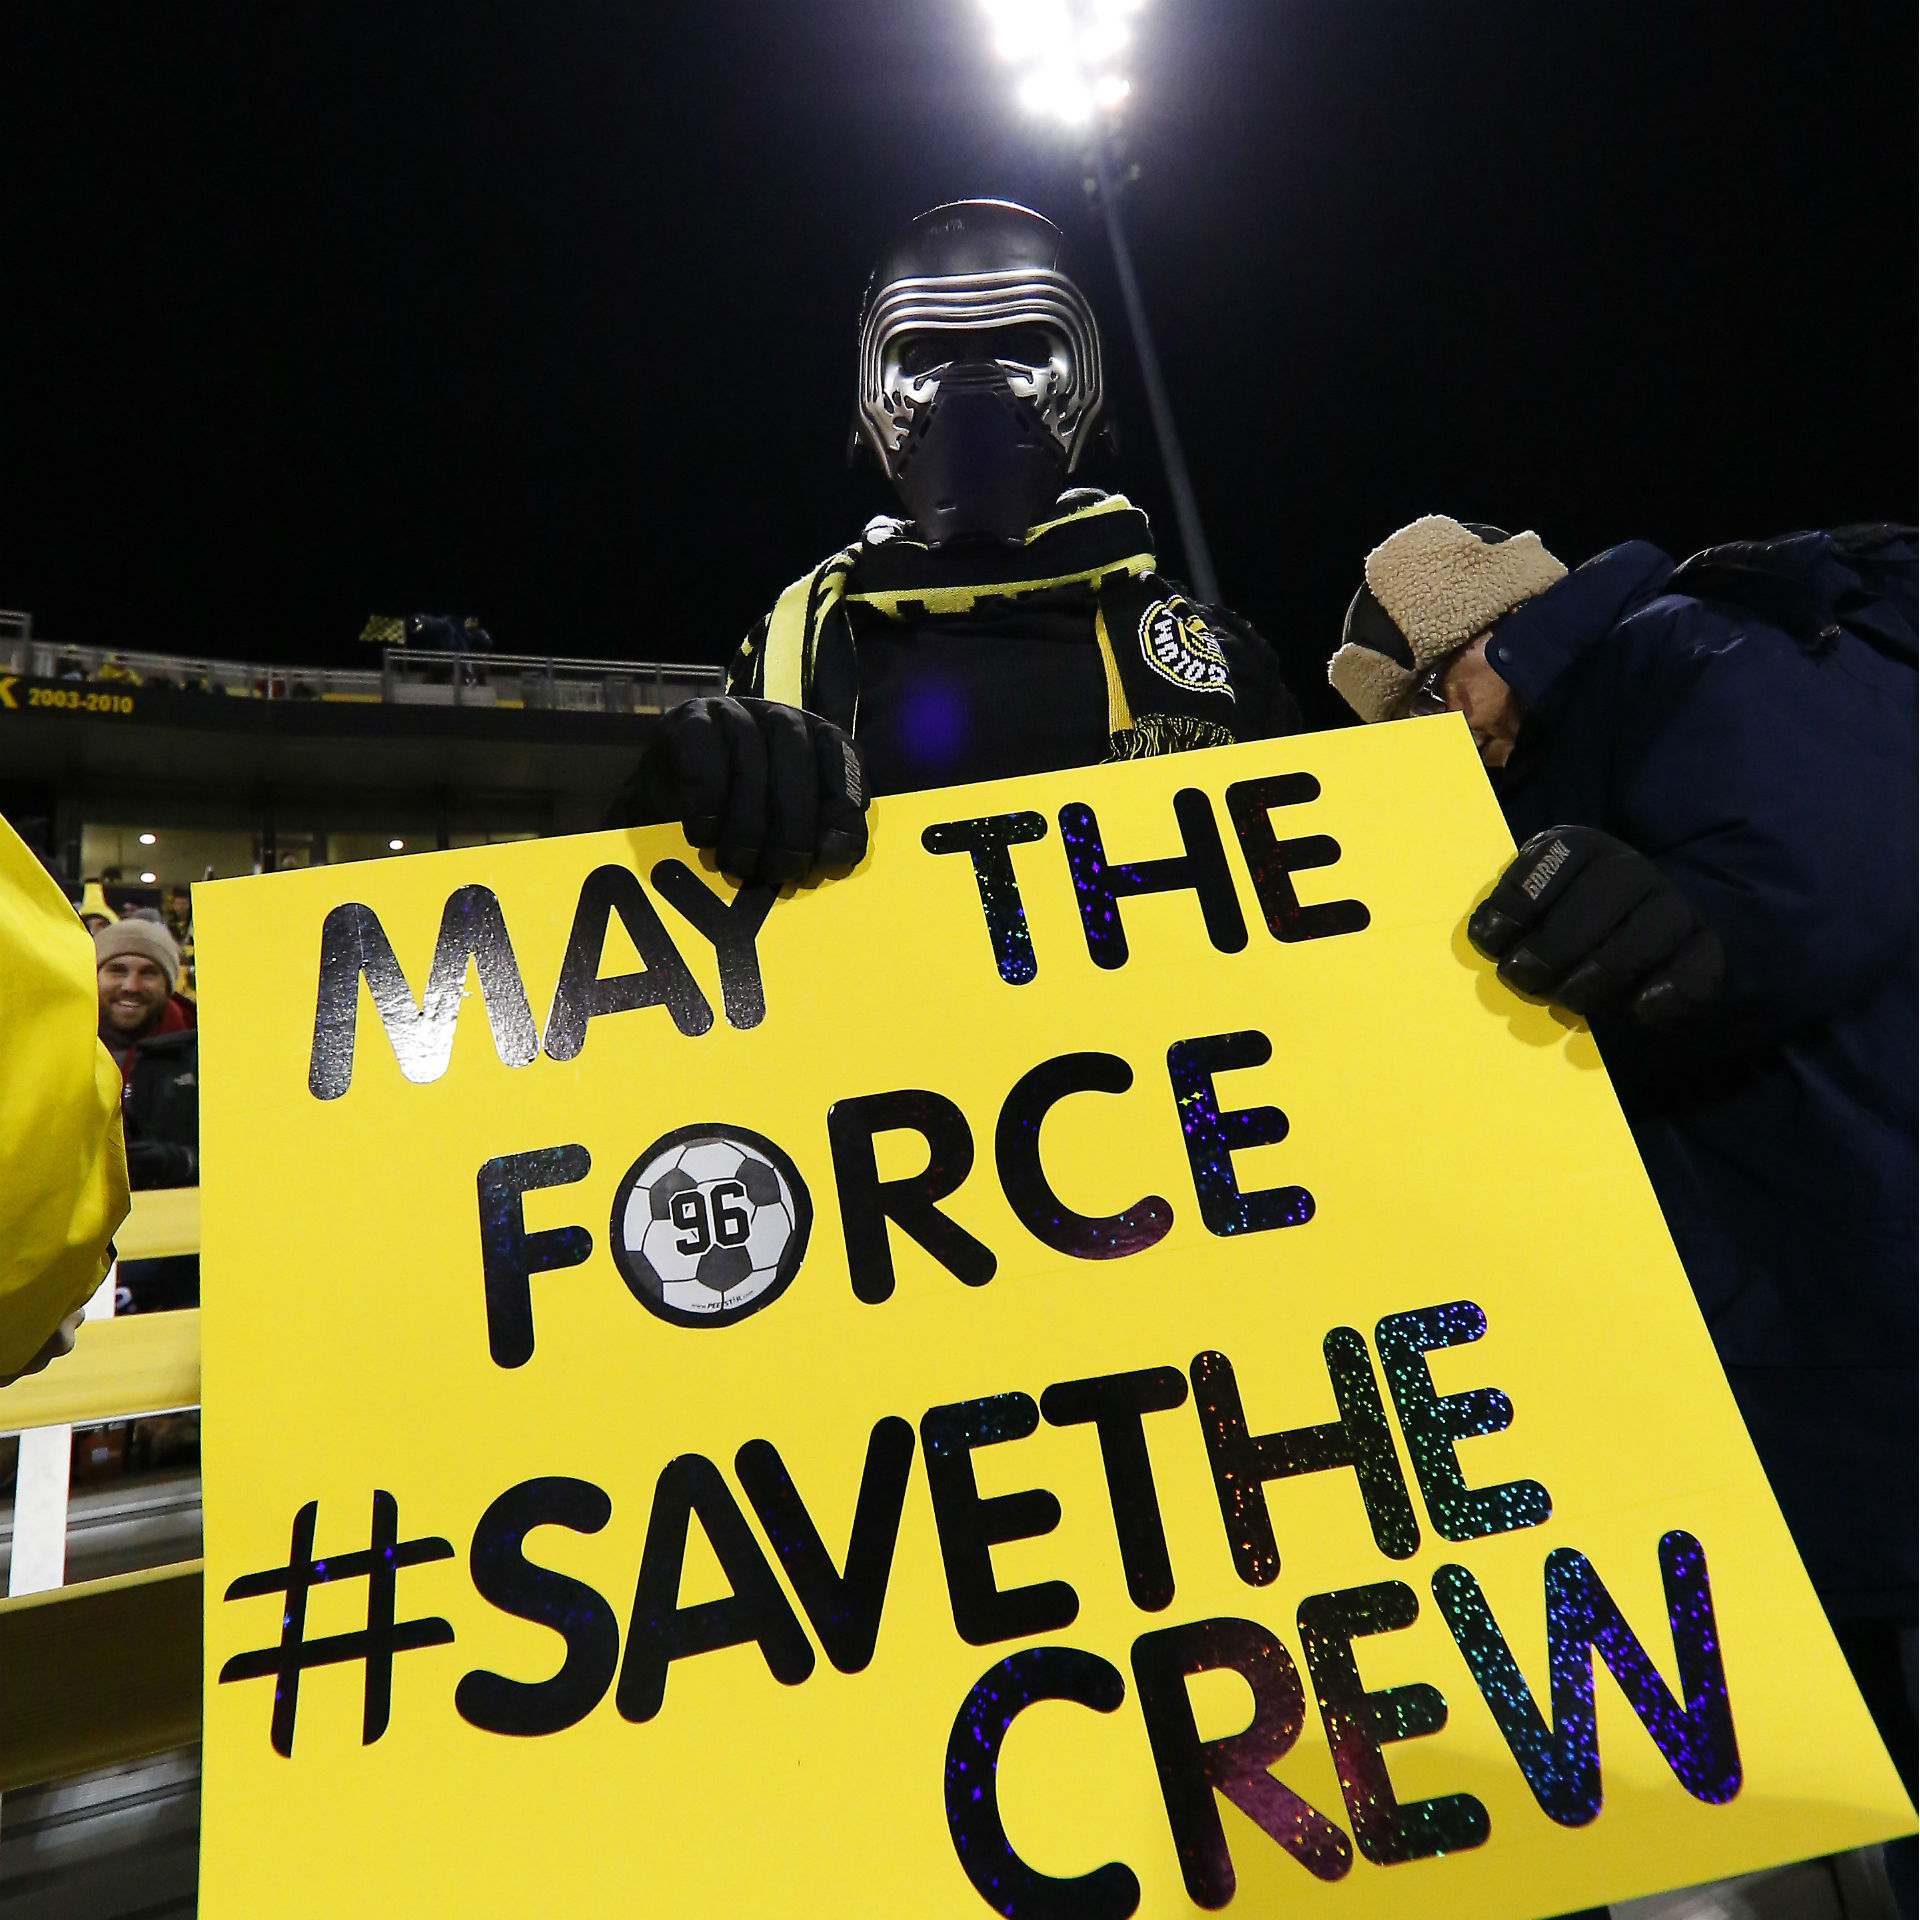 EMBED ONLY - Save the Crew